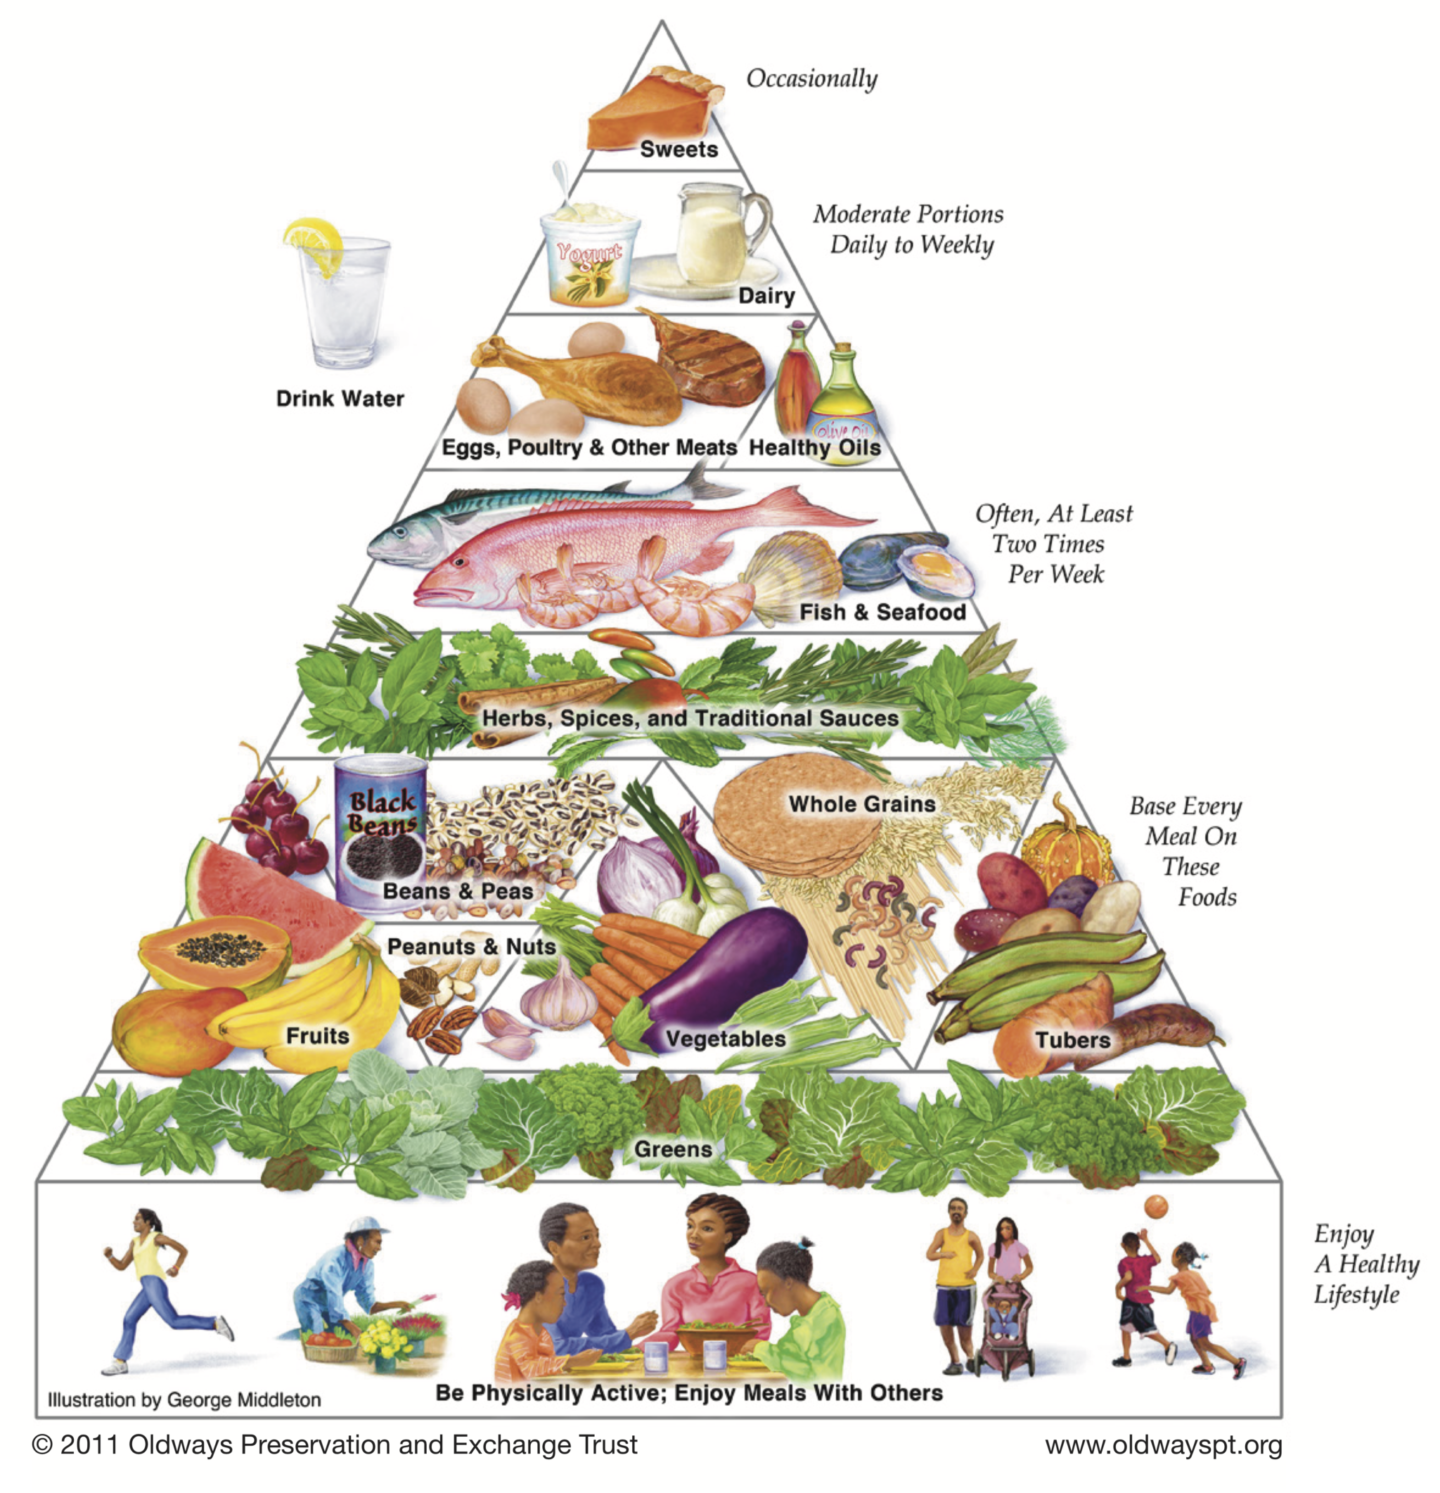 Healthy Eating Pyramid for Africans